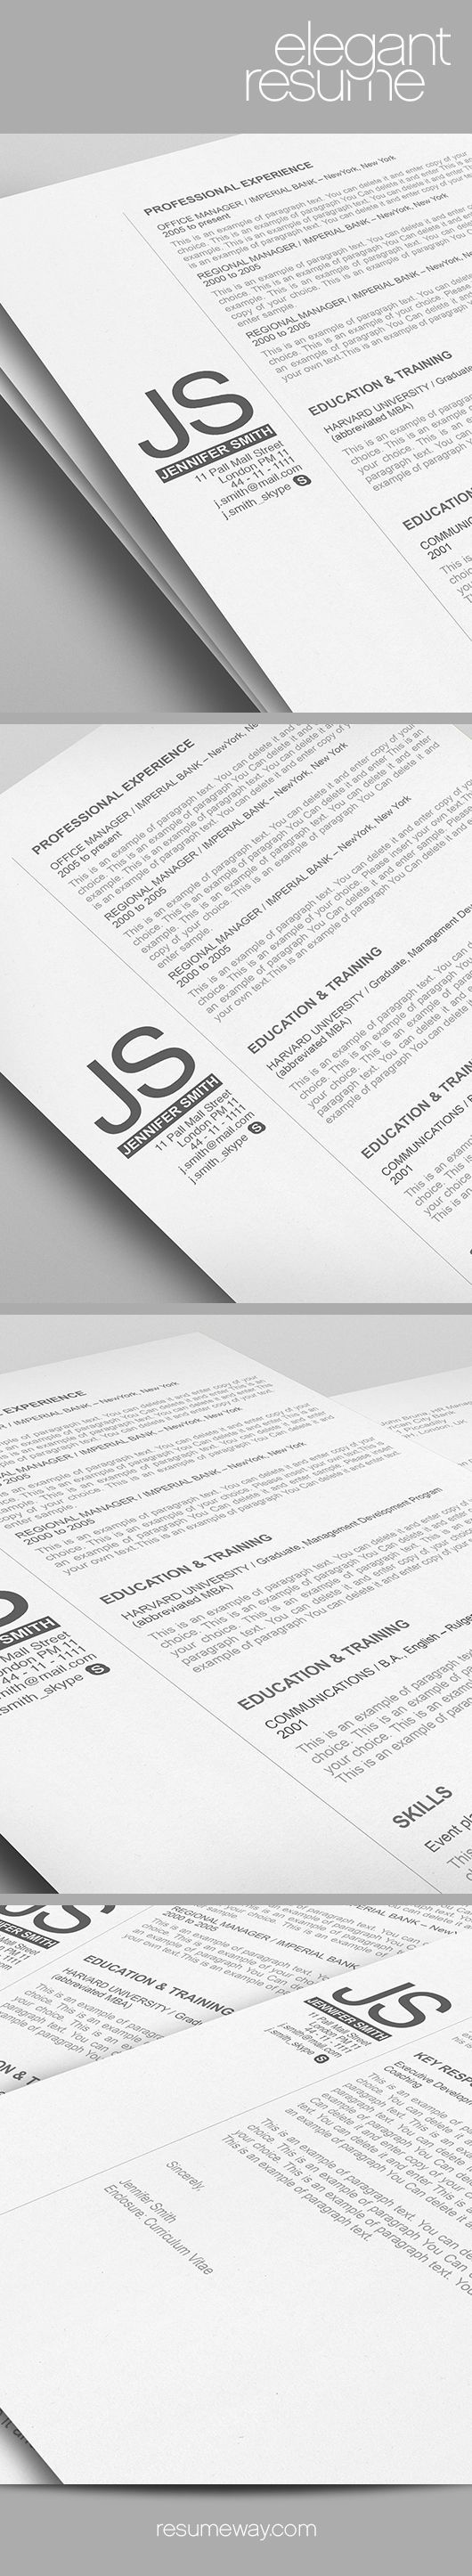 elegant resume template 110540 premium line of resume cover letter templates easy edit with ms word apple pages resume resumes resumeway